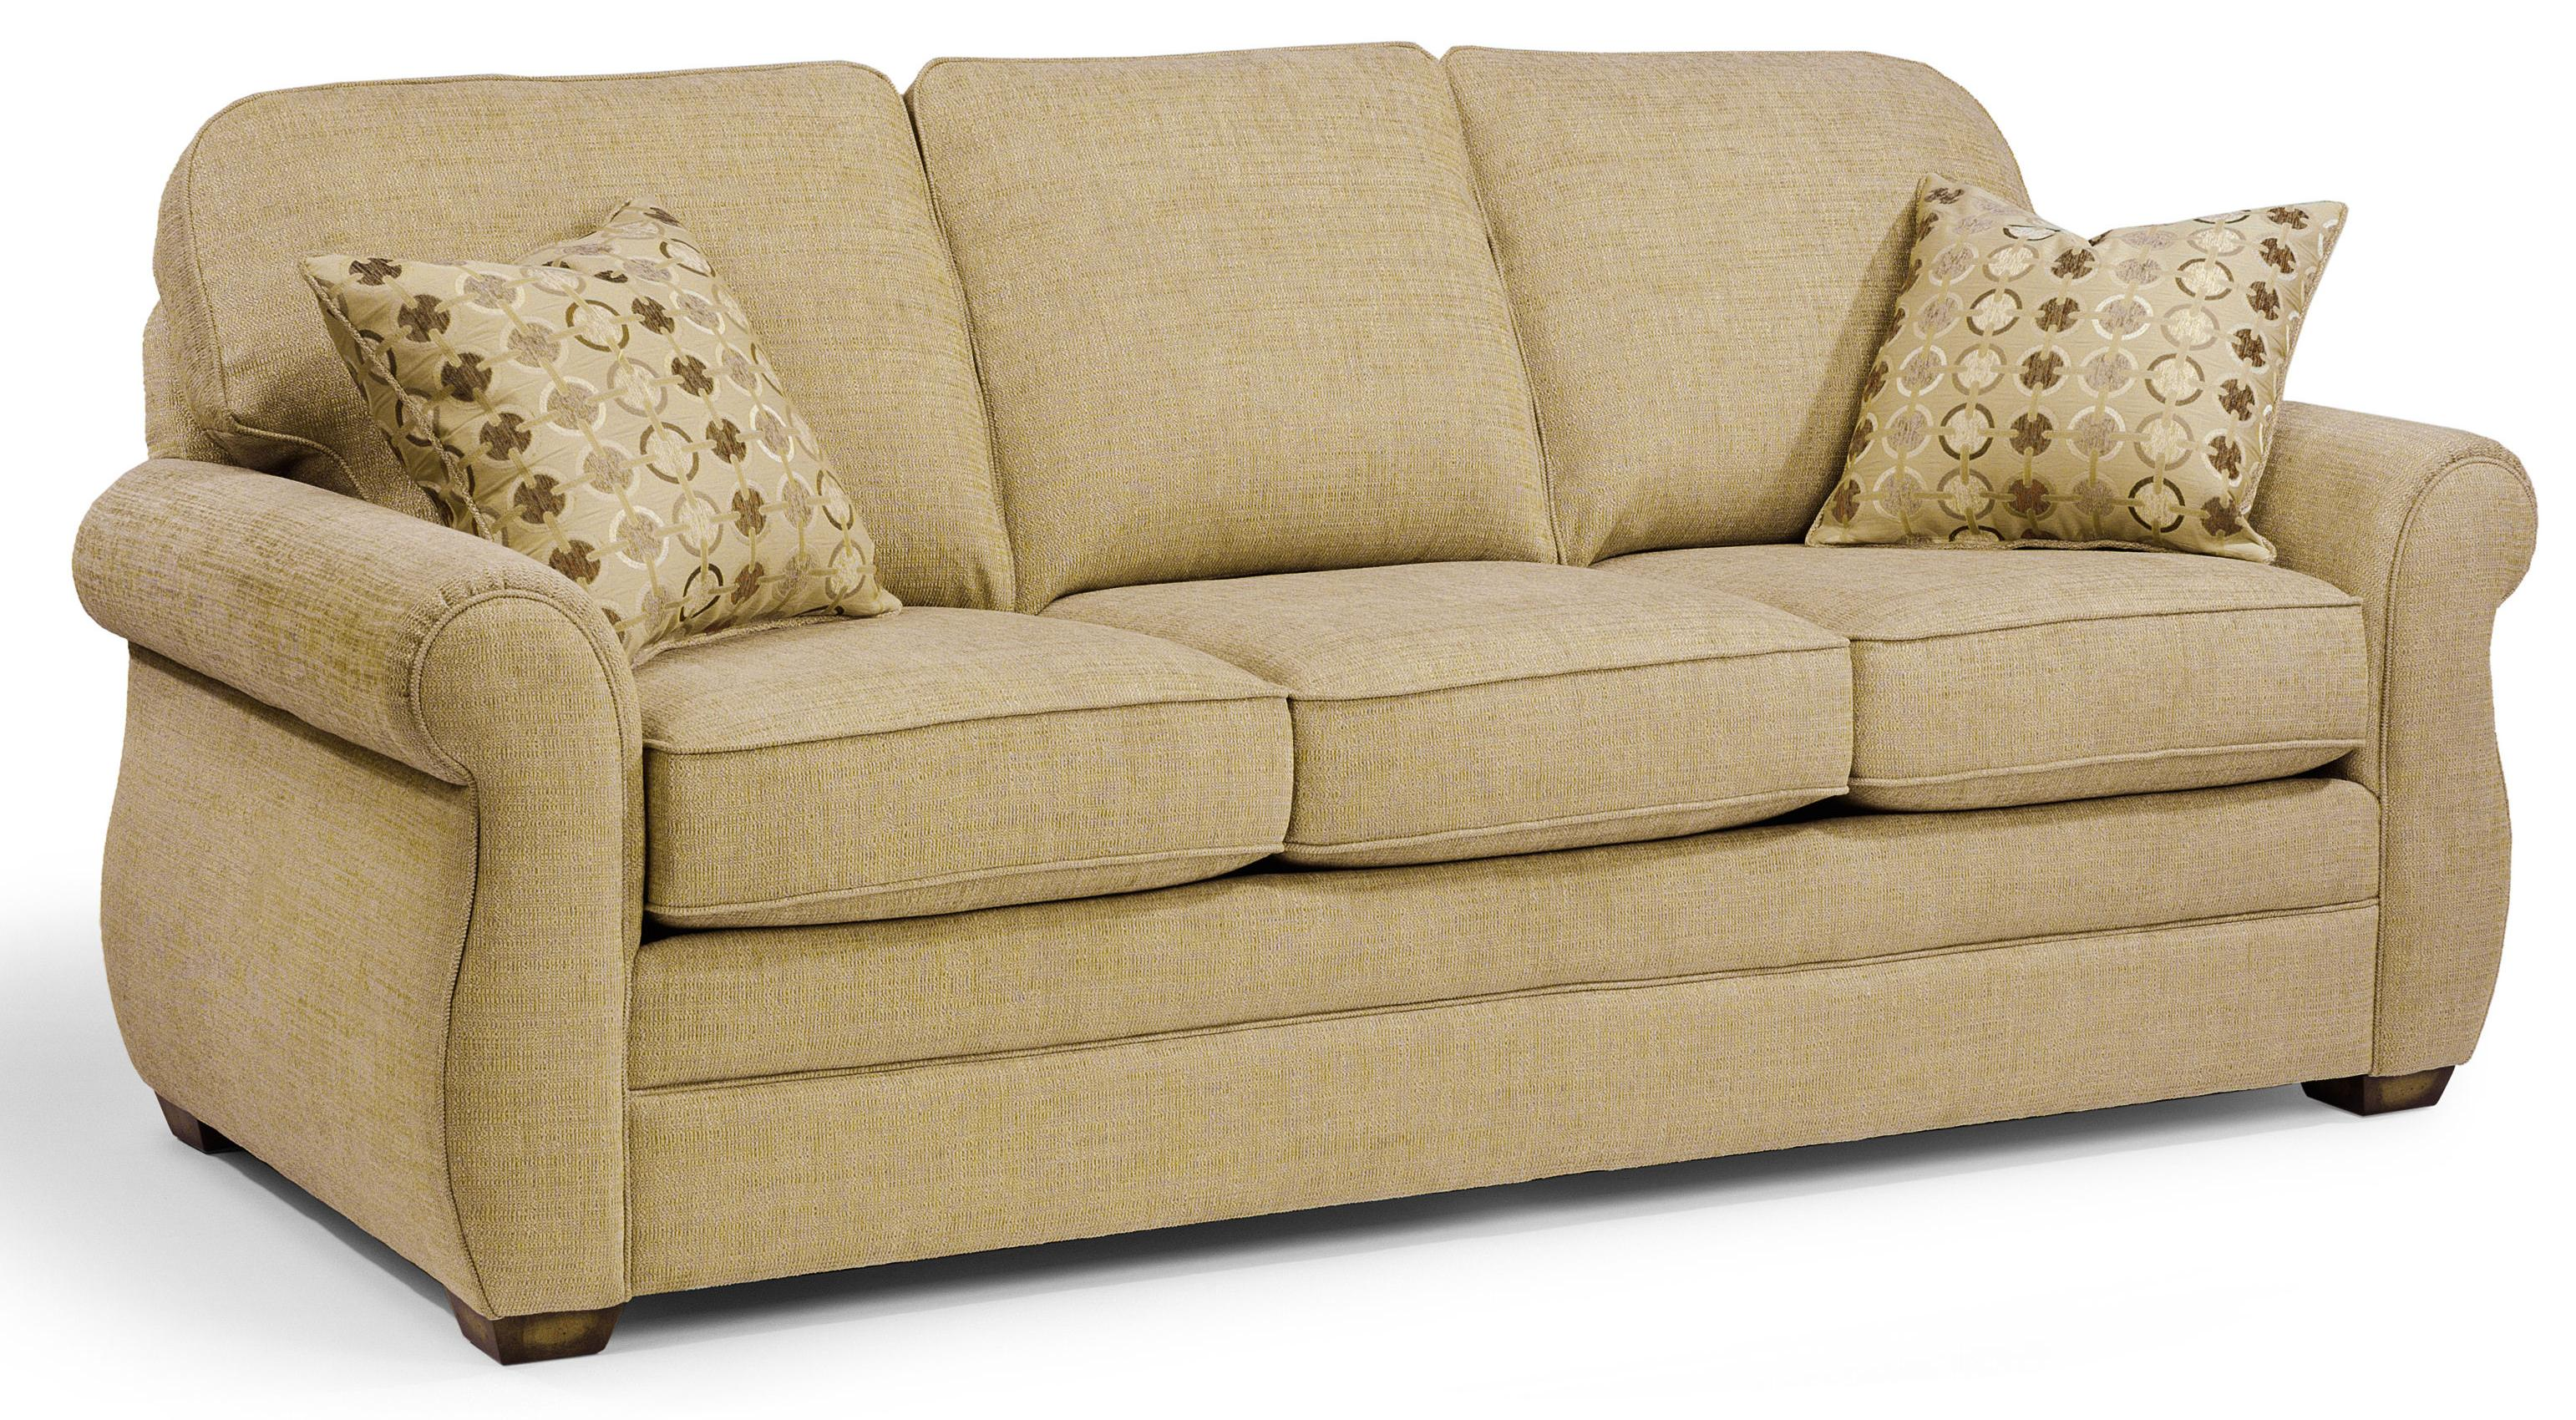 sofas couches white sofa for hire flexsteel whitney with turned arms and wood block